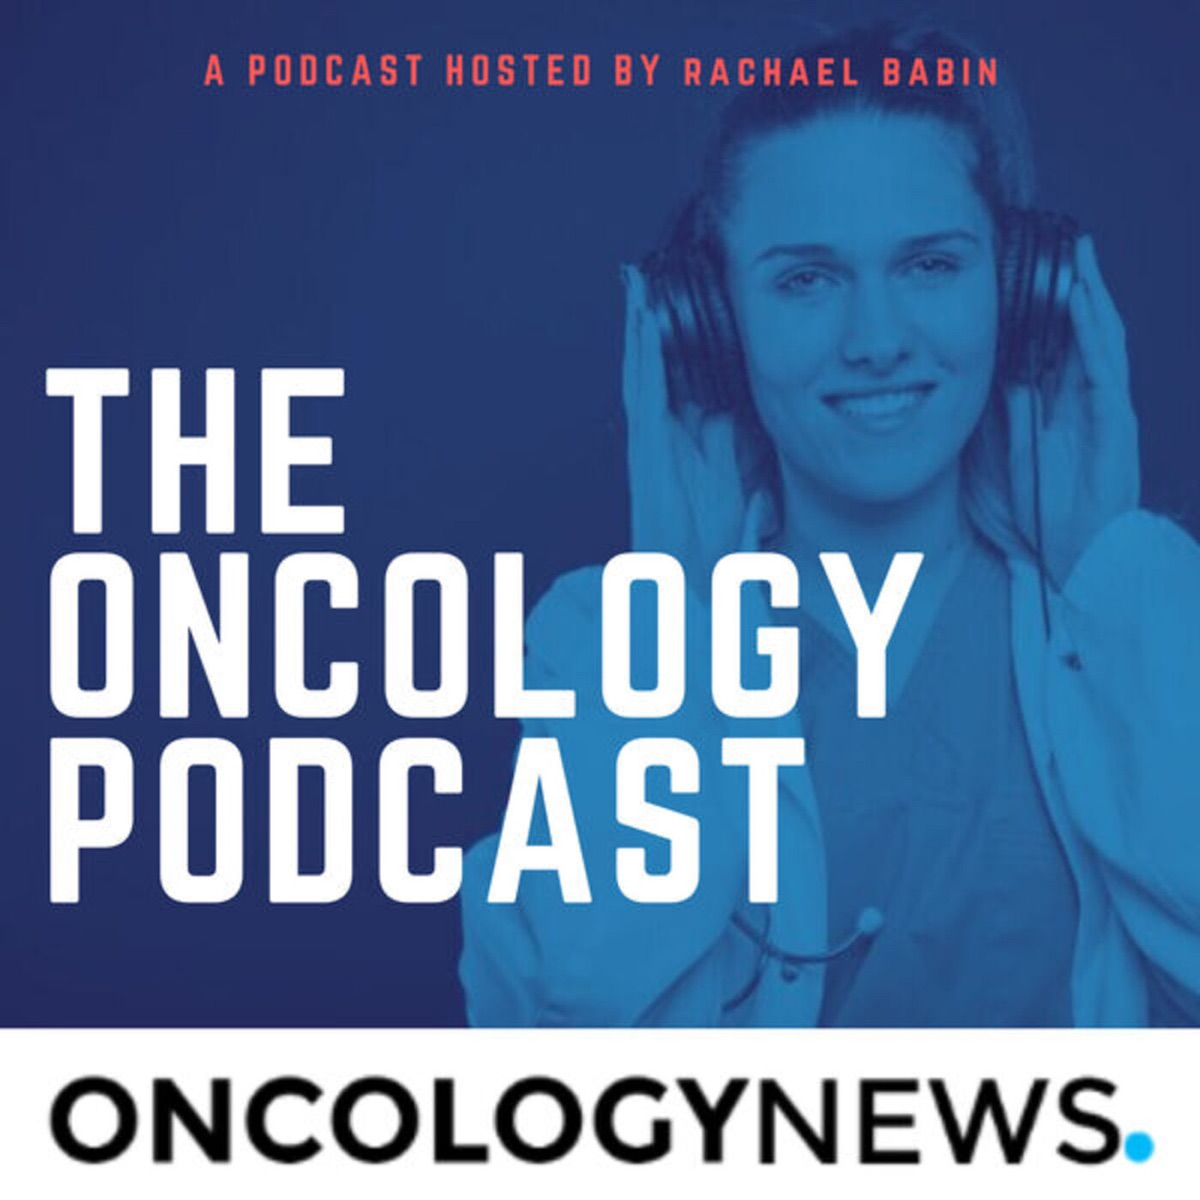 The Oncology Podcast